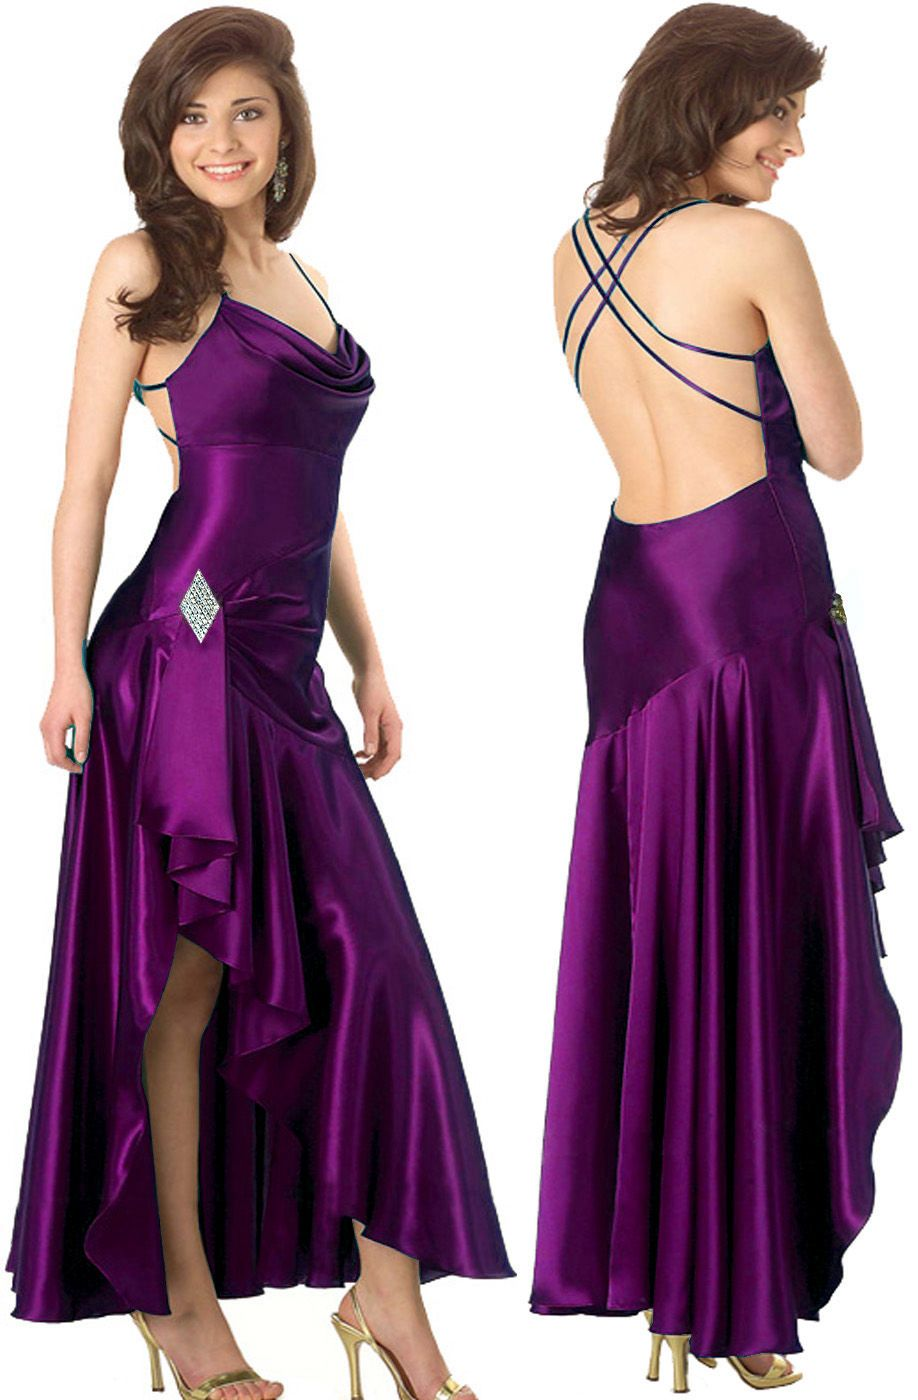 purple bridesmaid dresses | Beautiful Purple Wedding Bridesmaid ...